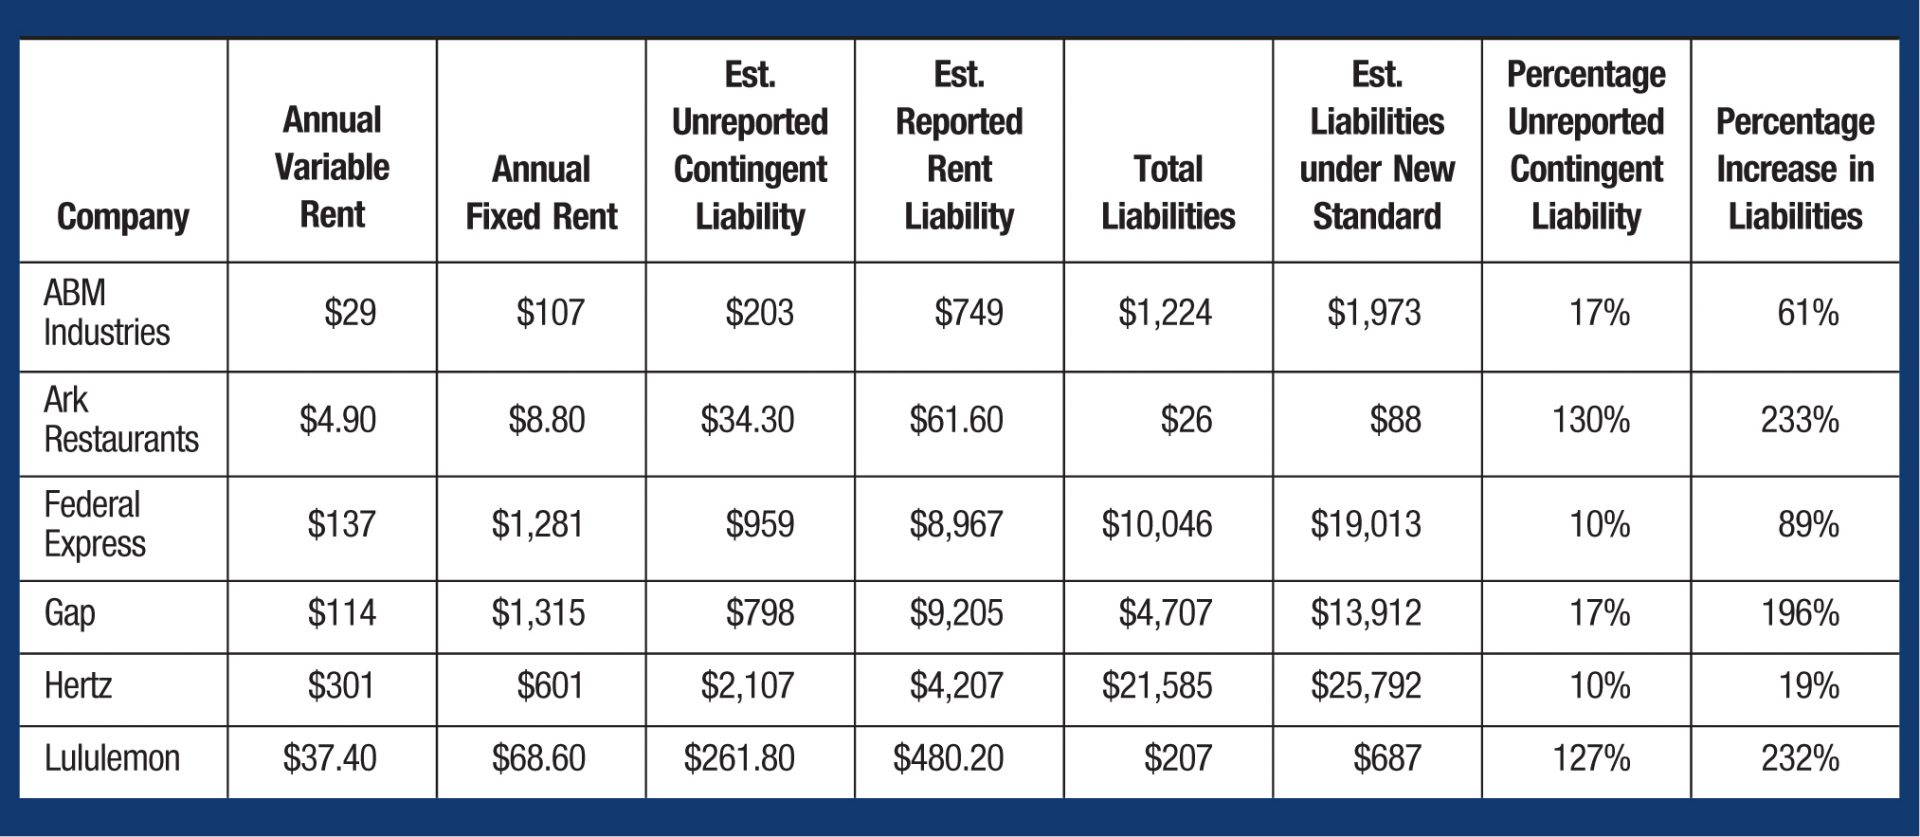 Company; Annual Variable Rent; Annual Fixed Rent; Est. Unreported  Contingent Liability;